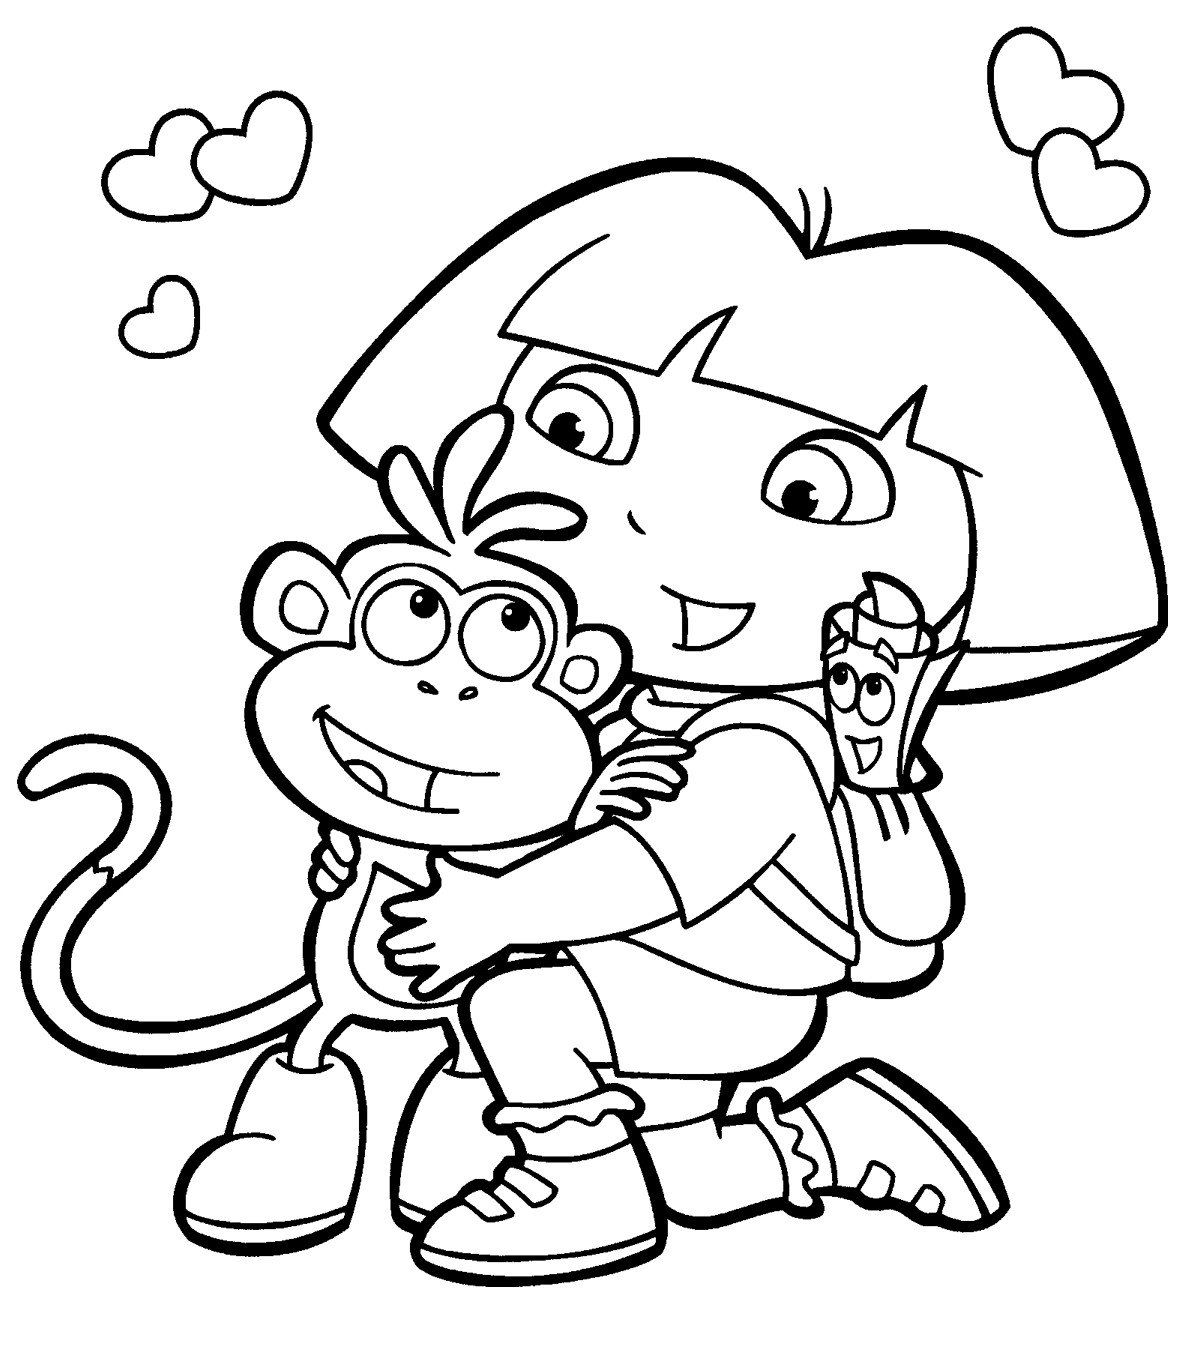 Kids Free Printable Coloring Pages Free Printable Dora The Explorer Coloring Pages For Kids In 2020 Birthday Coloring Pages Dora Coloring Kids Printable Coloring Pages